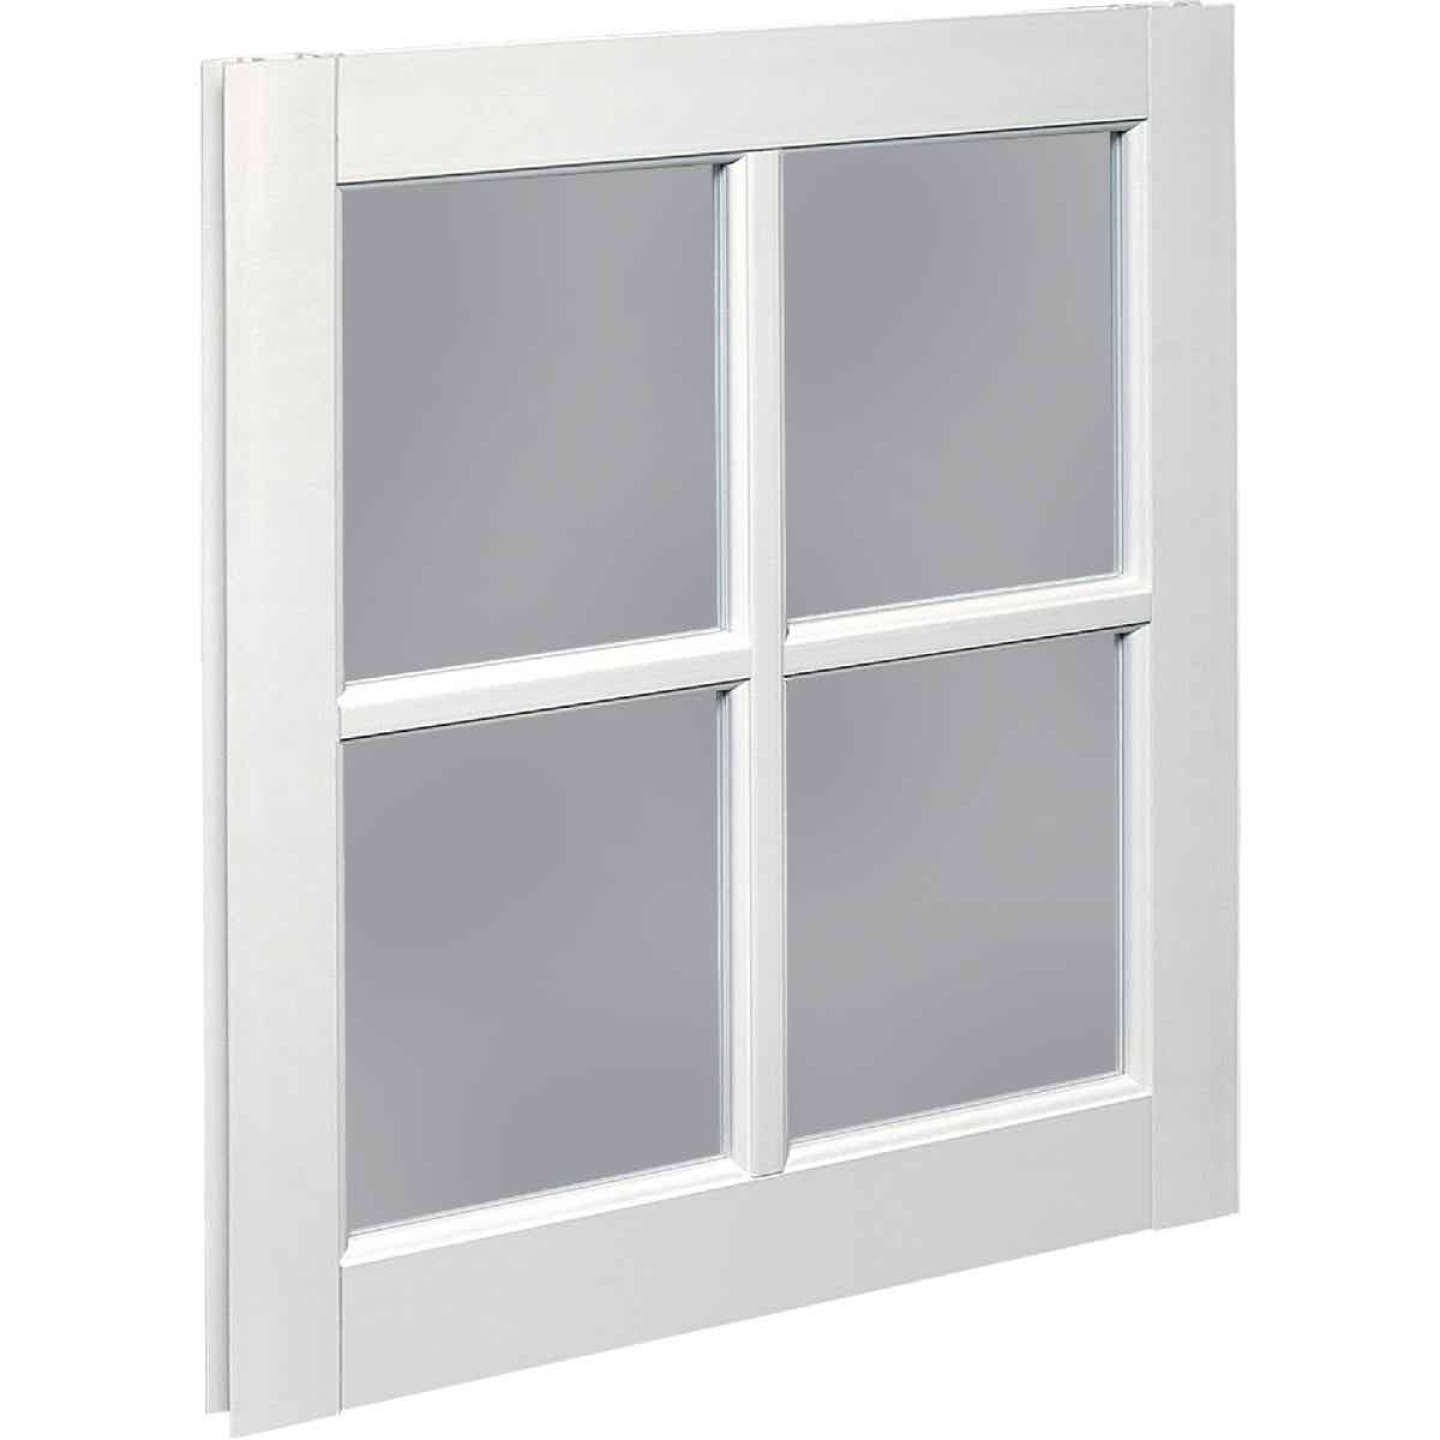 Northview Window 22 In. x 29 In. PVC 4-Lite Barn Sash Image 1